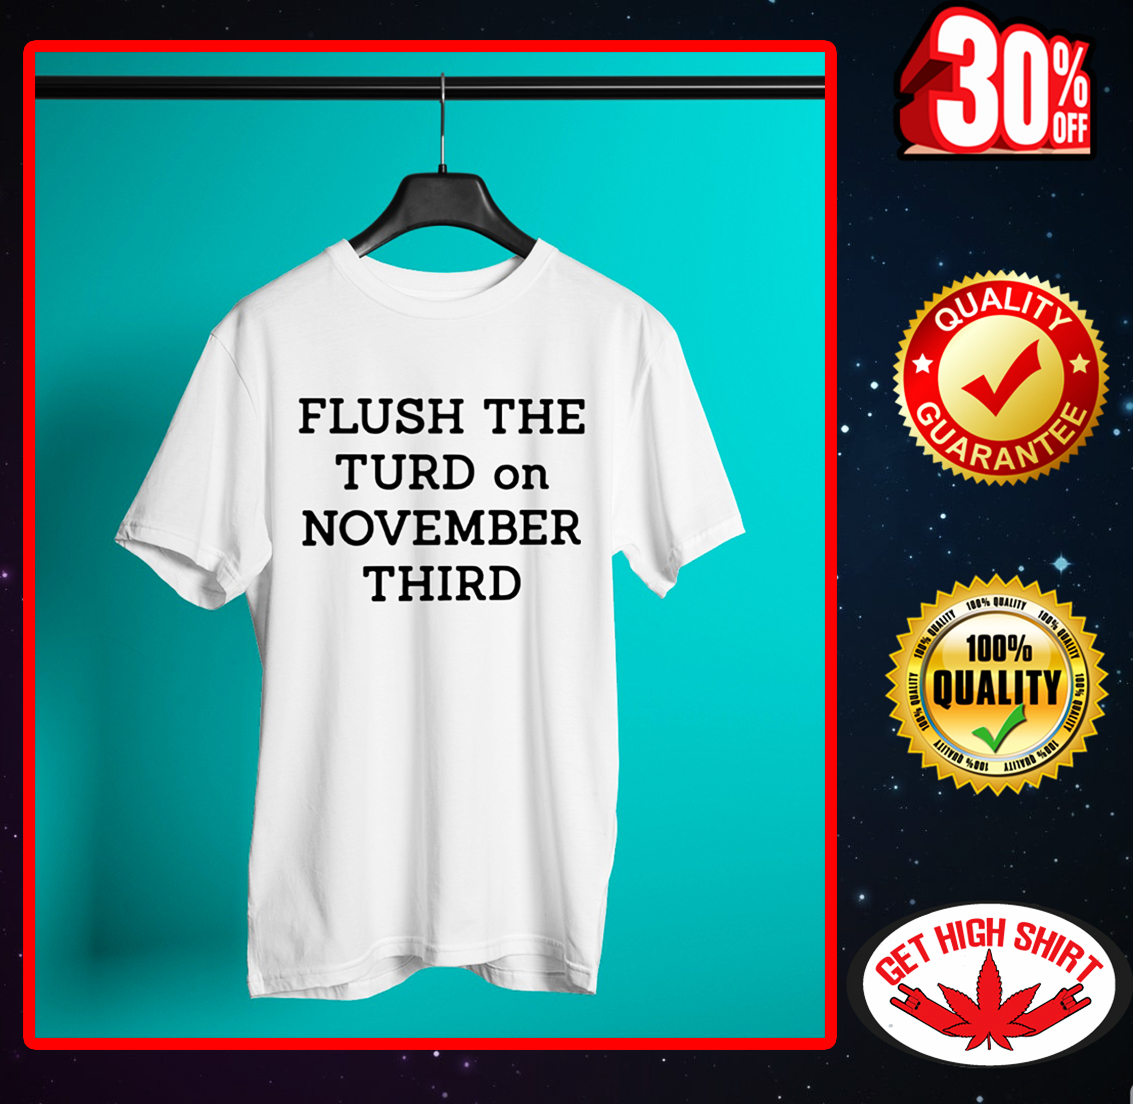 Flush the turd on november third shirt